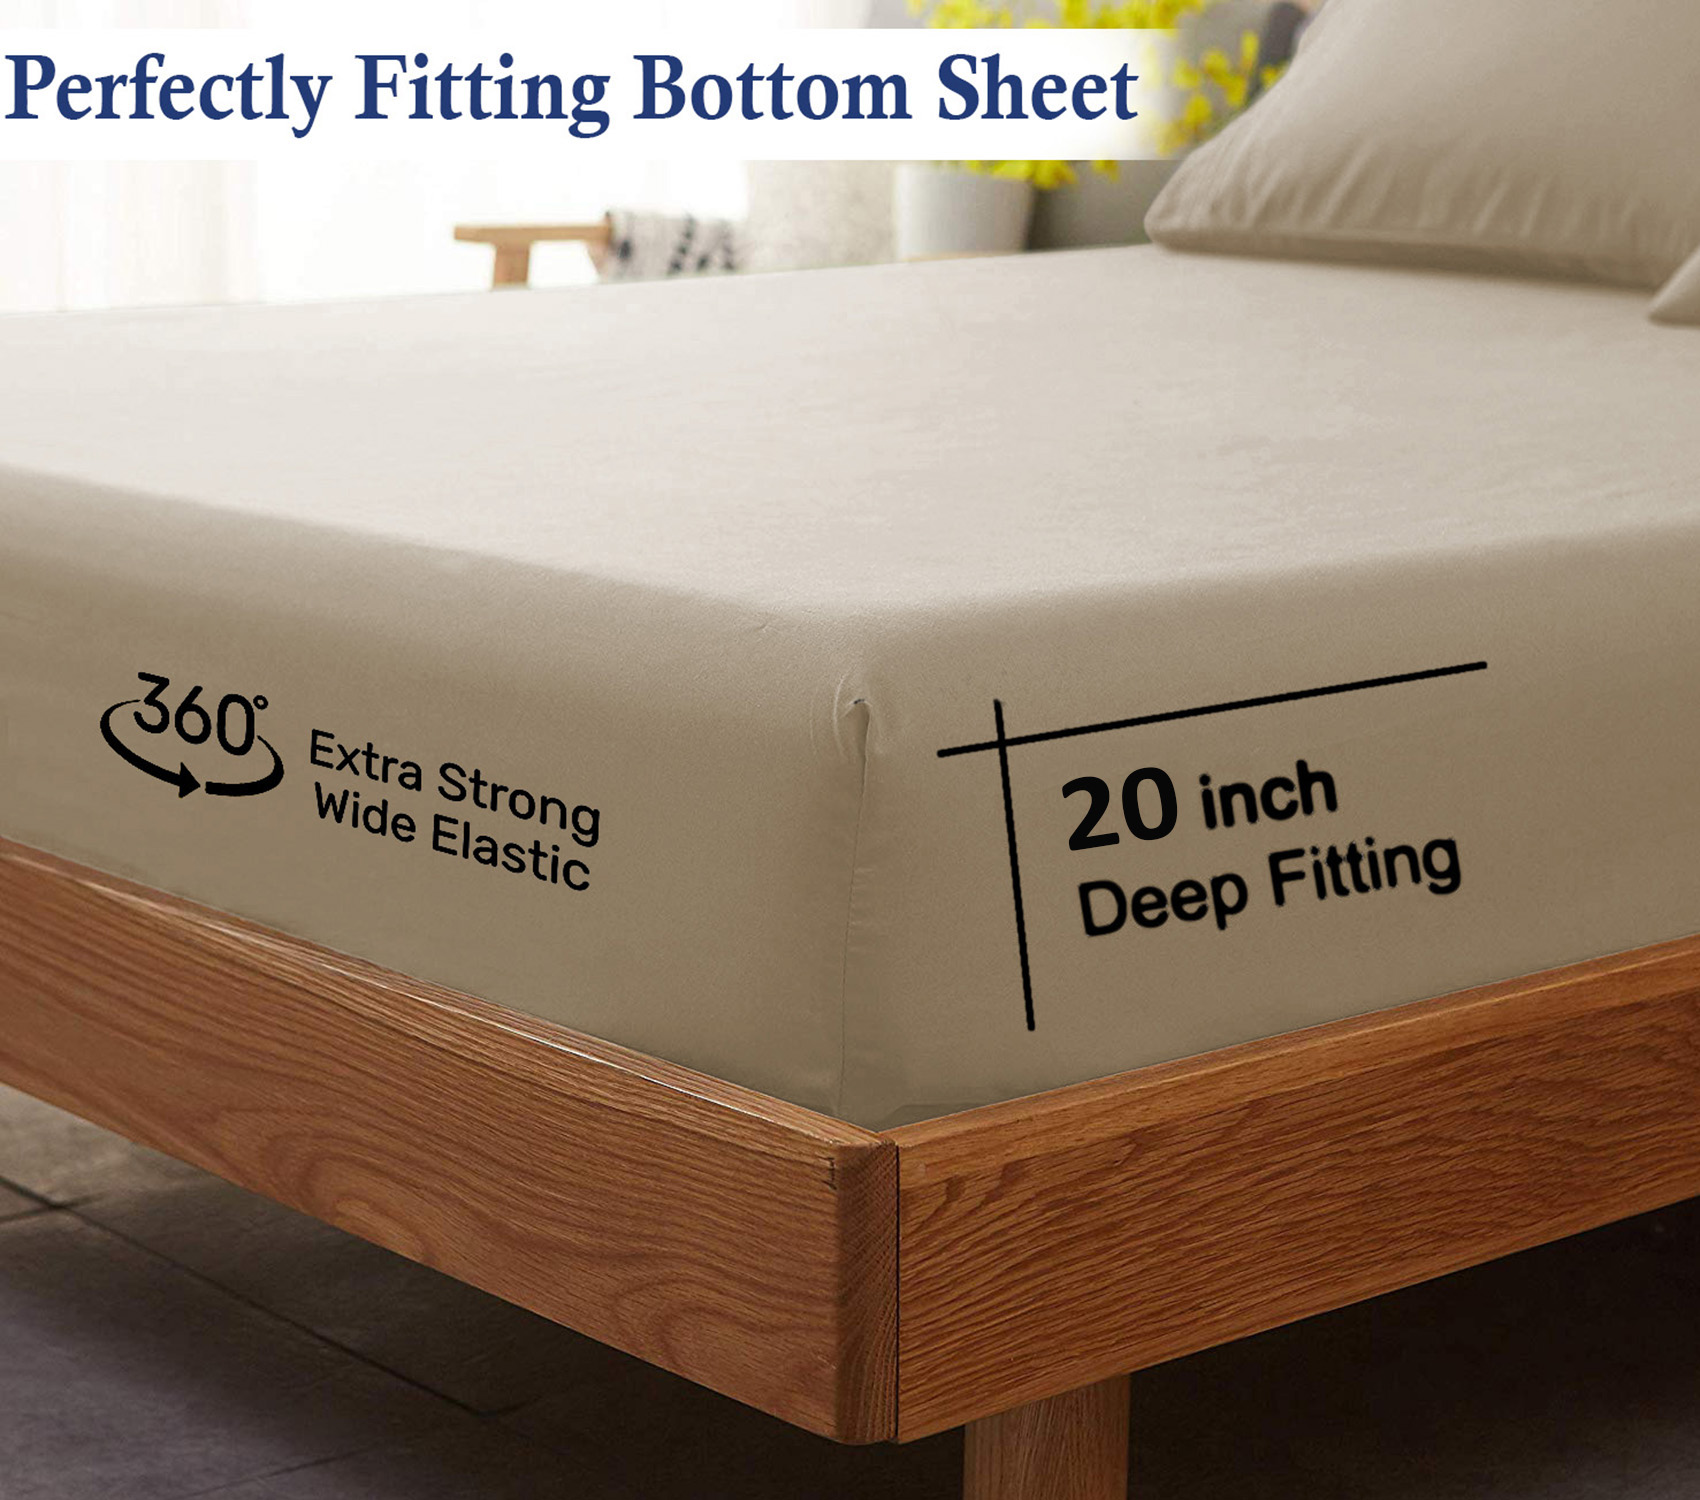 Lavish Touch Flannel Fitted Sheet Queen 100 Cotton Velvety Soft Heavyweight Double Brushed Flannel 1 Fitted Sheet 60 X80 20 Extra Deep Pocket Breathable Queen Sheet White Walmart Com Walmart Com